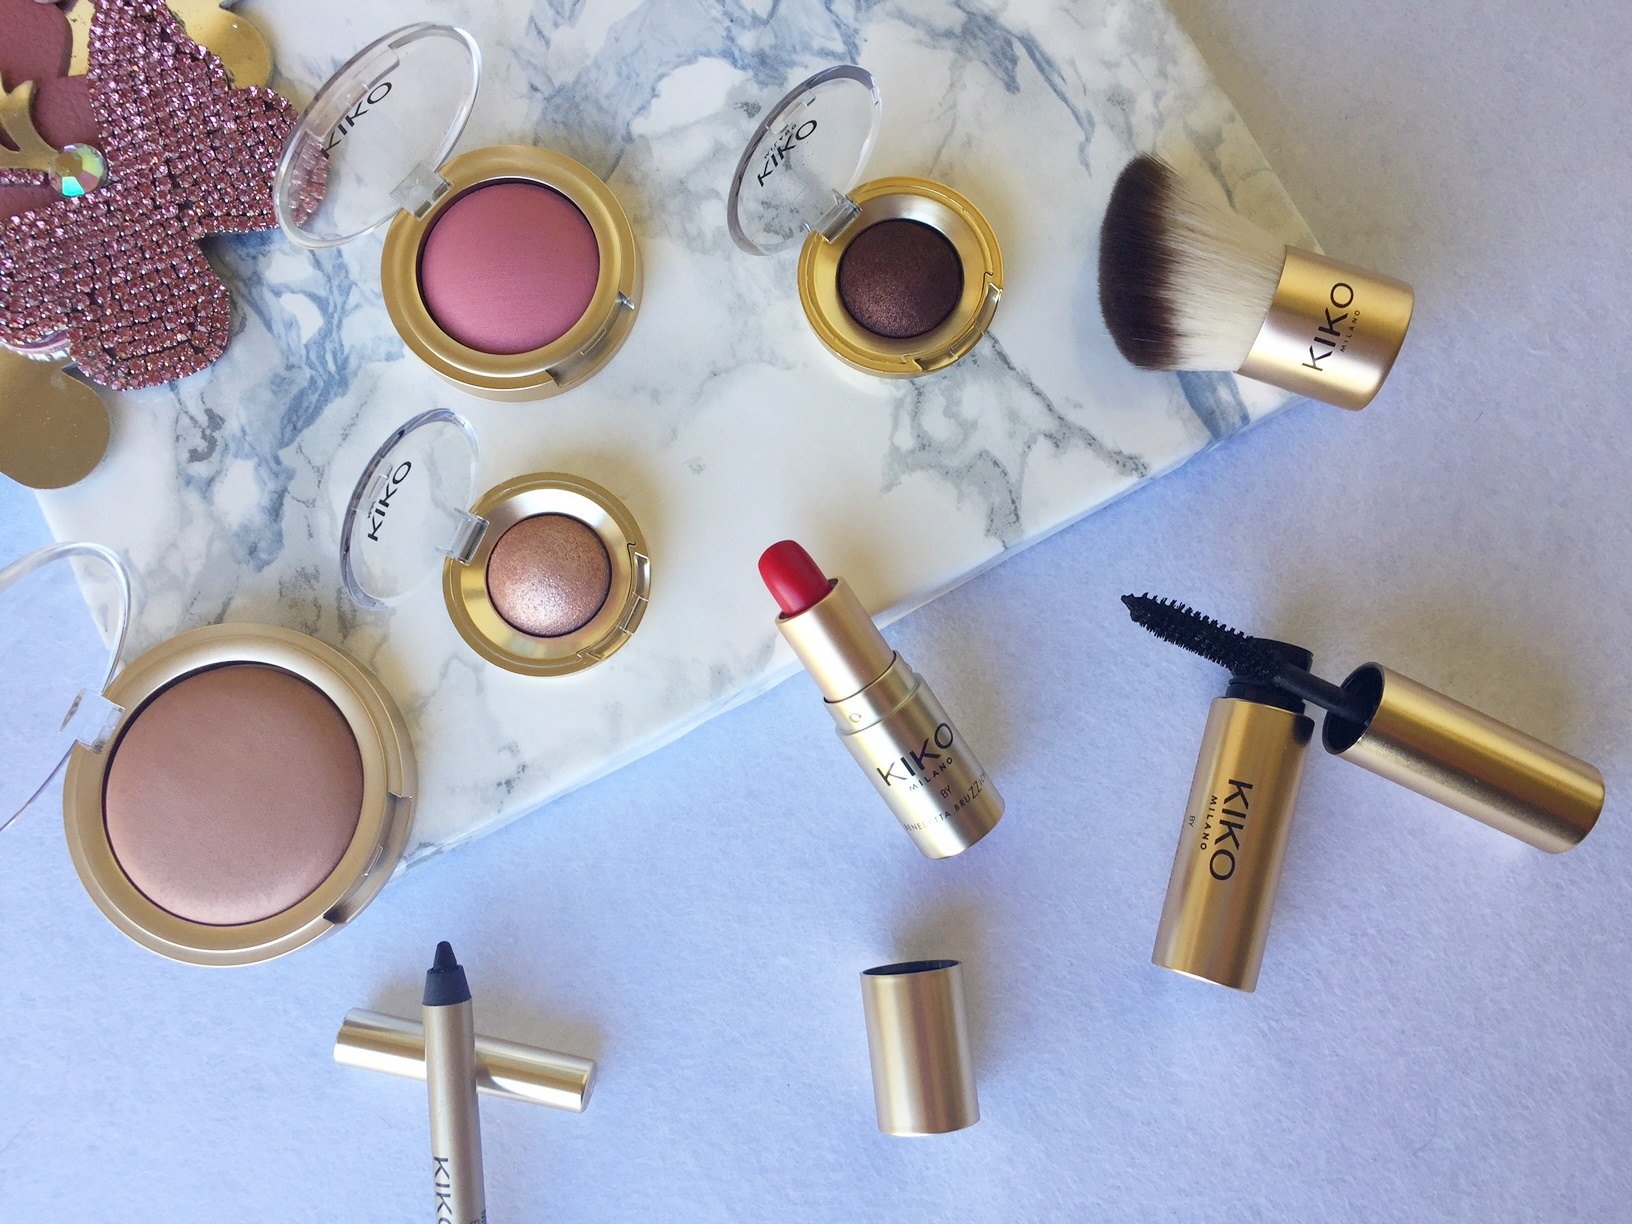 Mini Divas Capsule Collection by Benedetta Bruzziches (Kiko Milano)